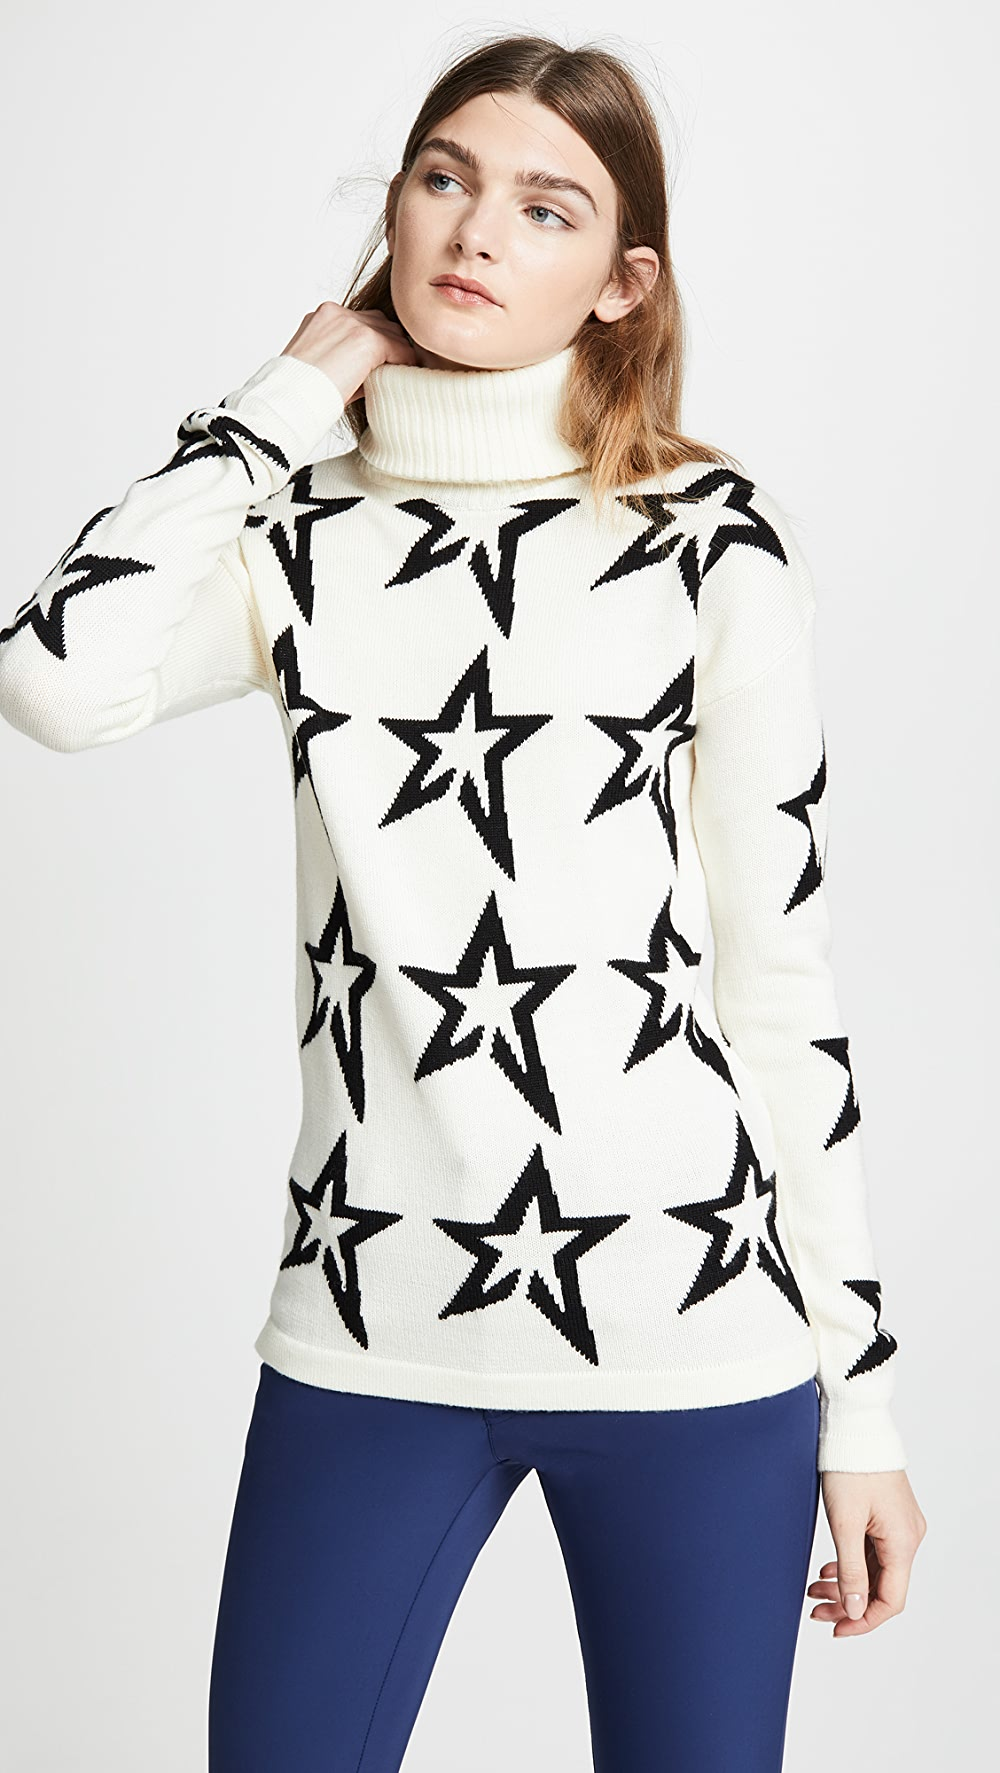 Considerate Perfect Moment - Star Dust Wool Sweater Preventing Hairs From Graying And Helpful To Retain Complexion